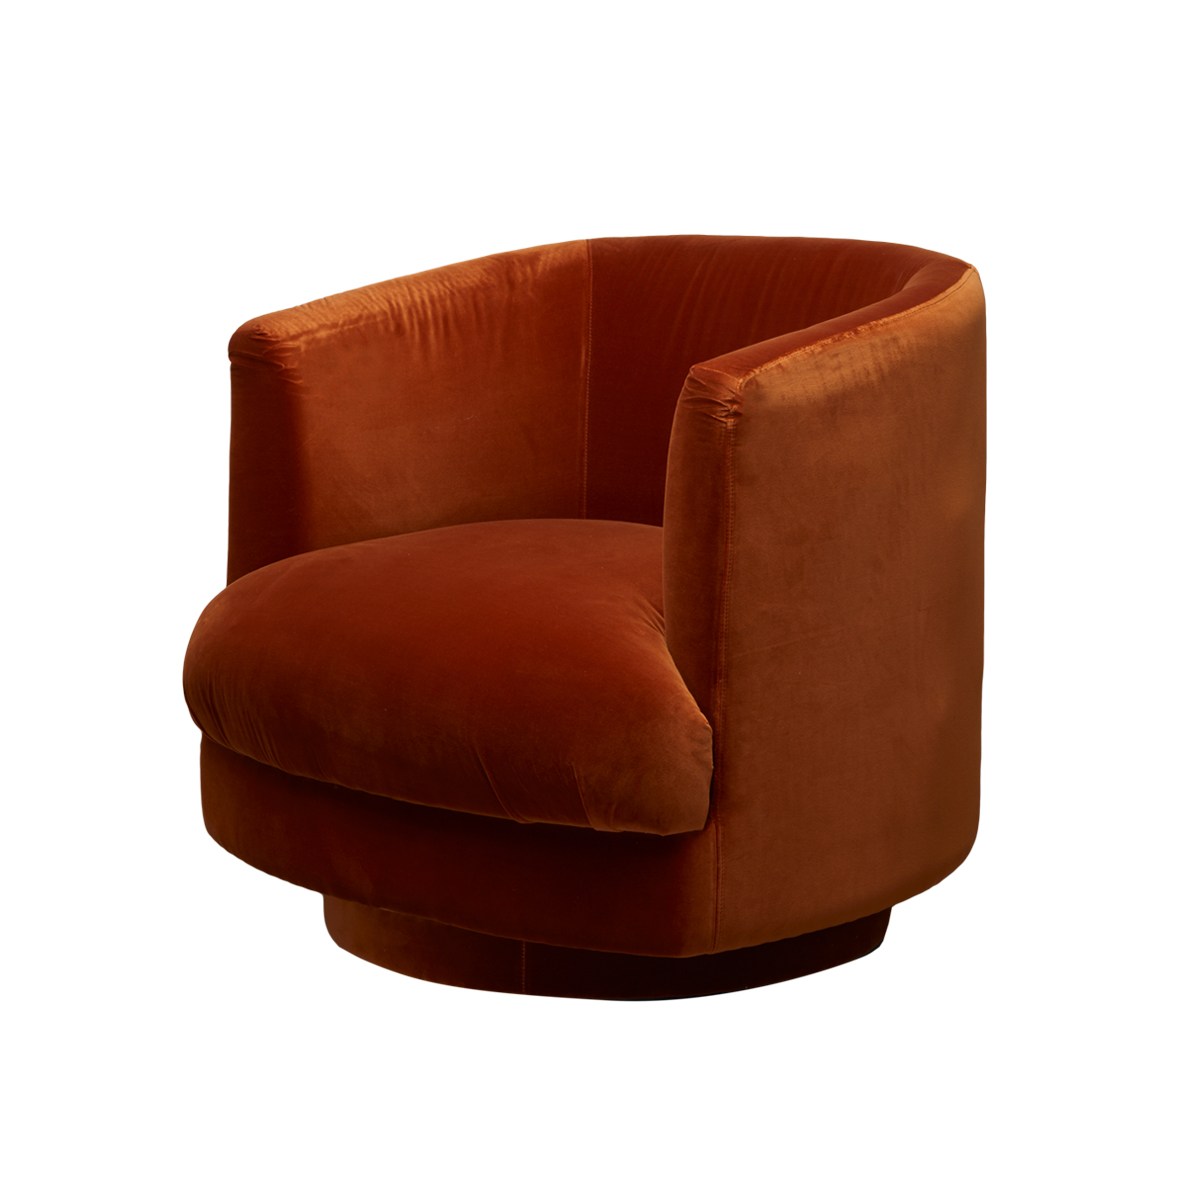 Cleo Swivel Fåtölj – Retro Orange